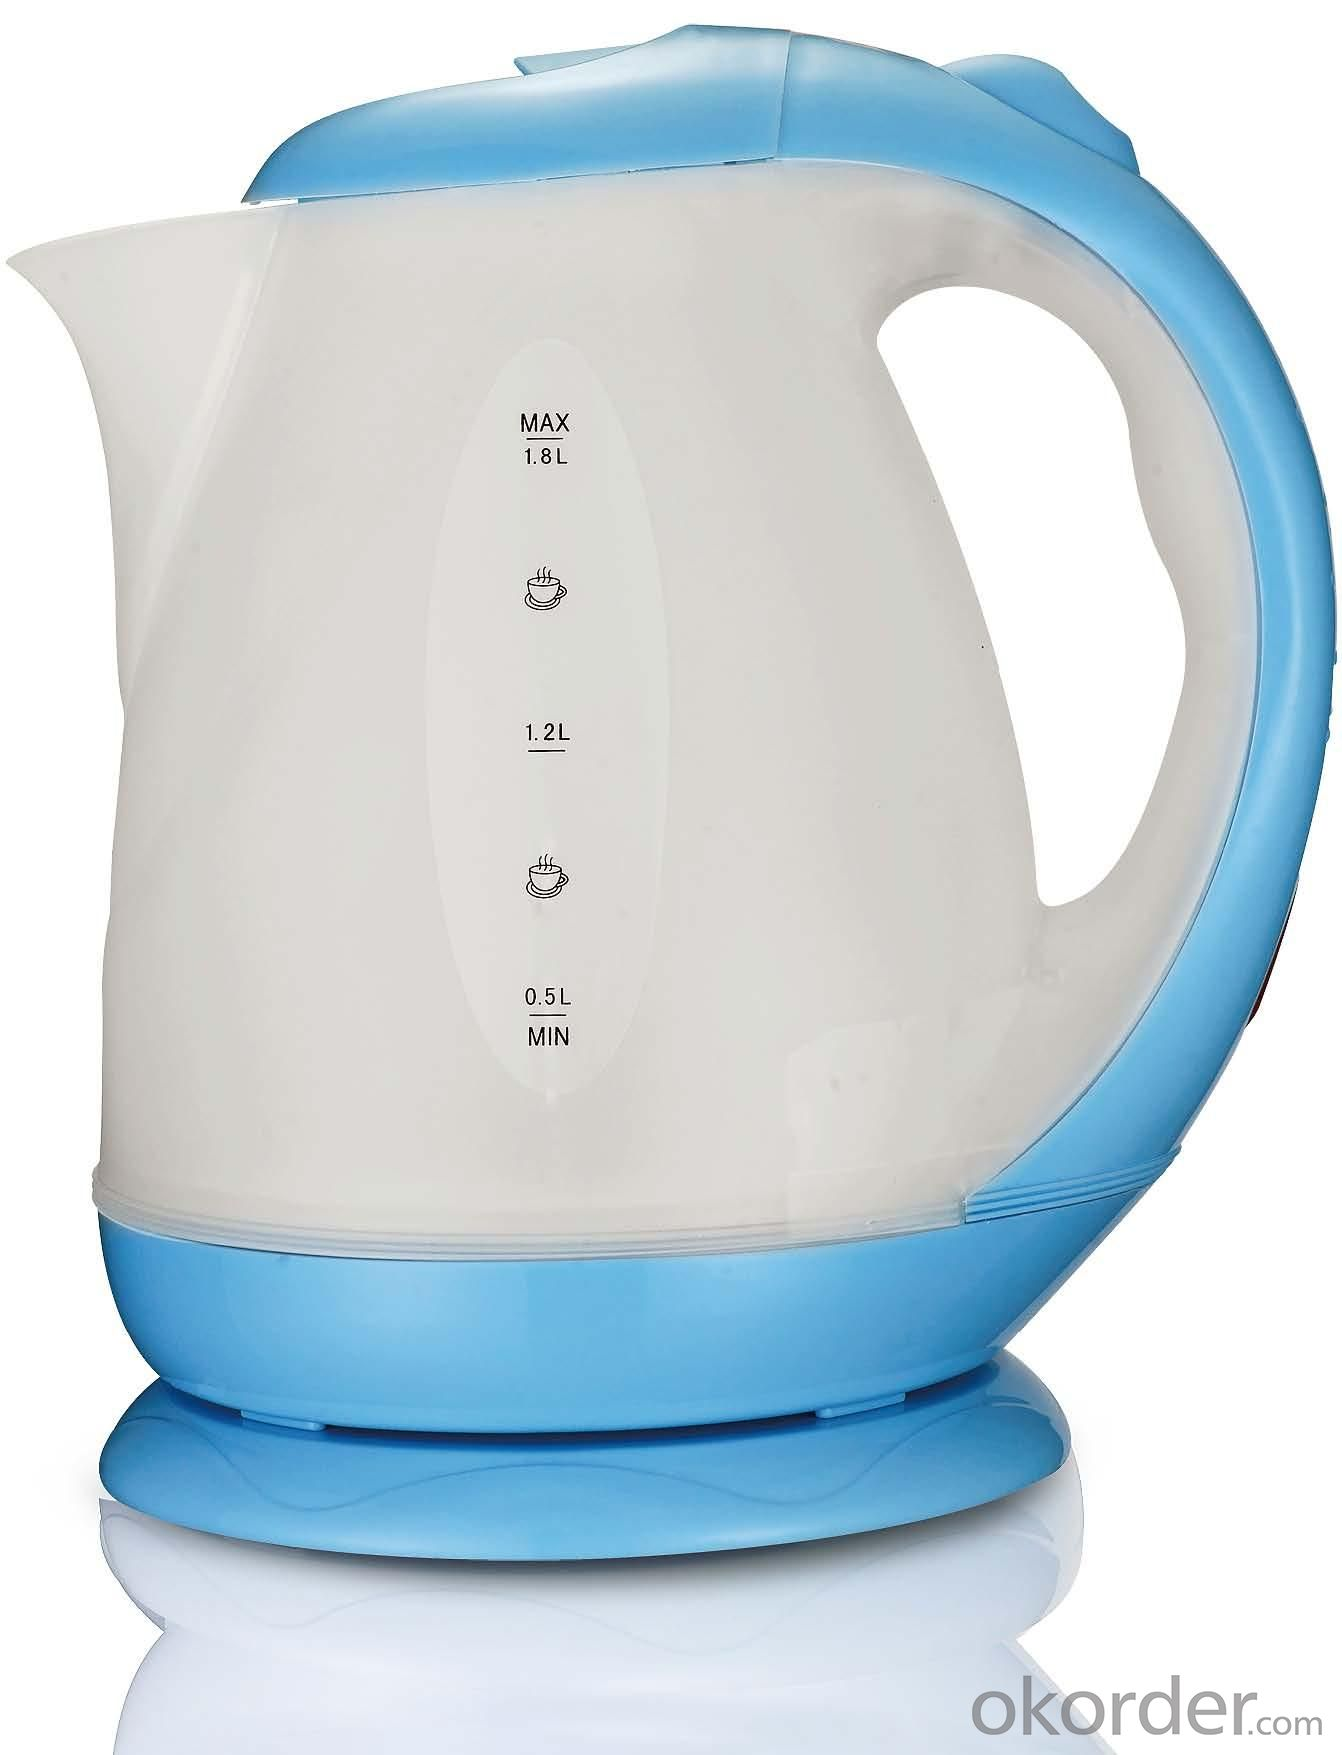 360 DEGREE ROTARY STYLE ELECTIRIC KETTLE